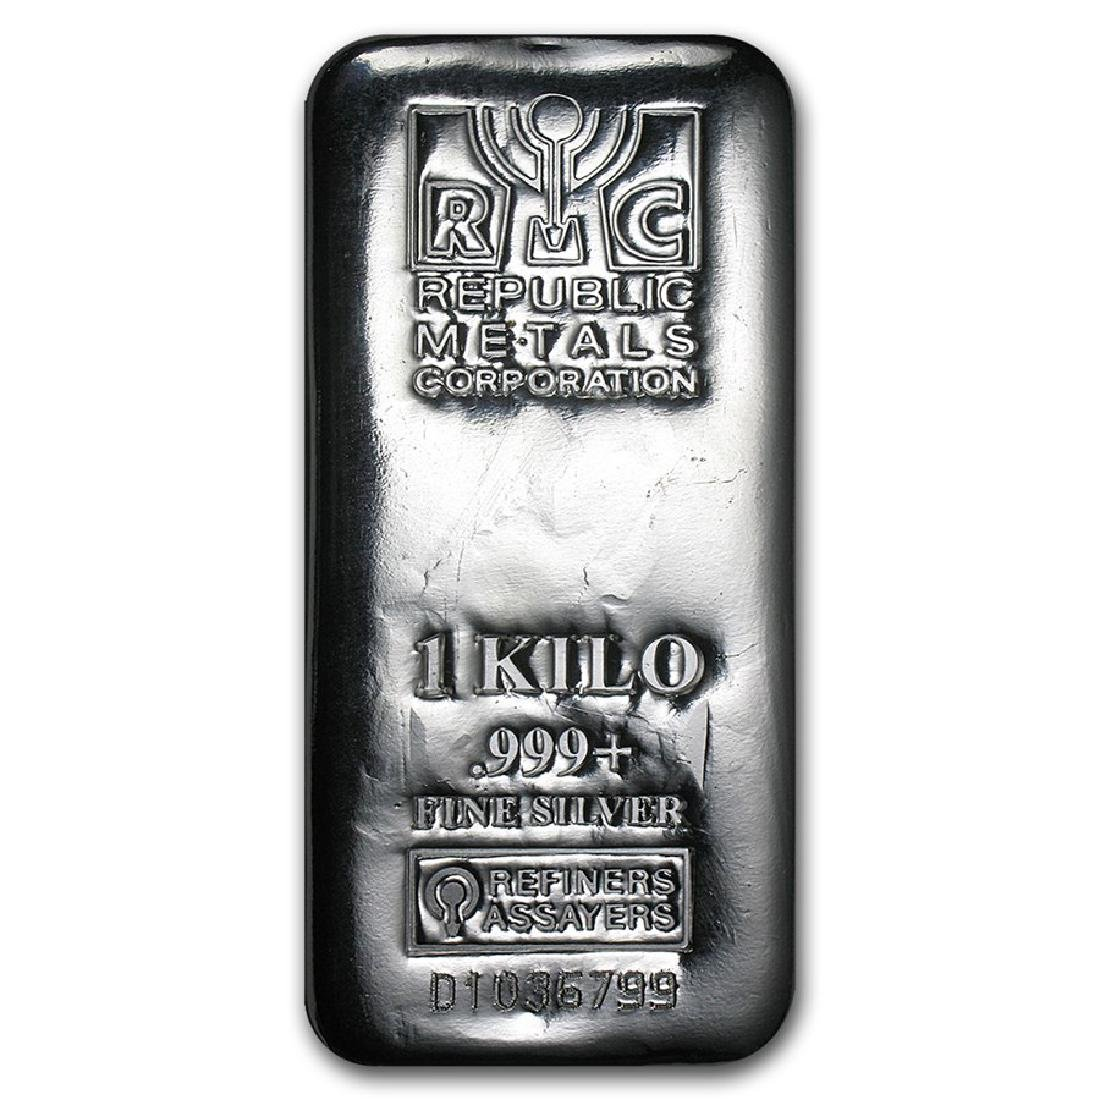 Genuine 1 kilo 0.999 Fine Silver Bar - Republic Metals